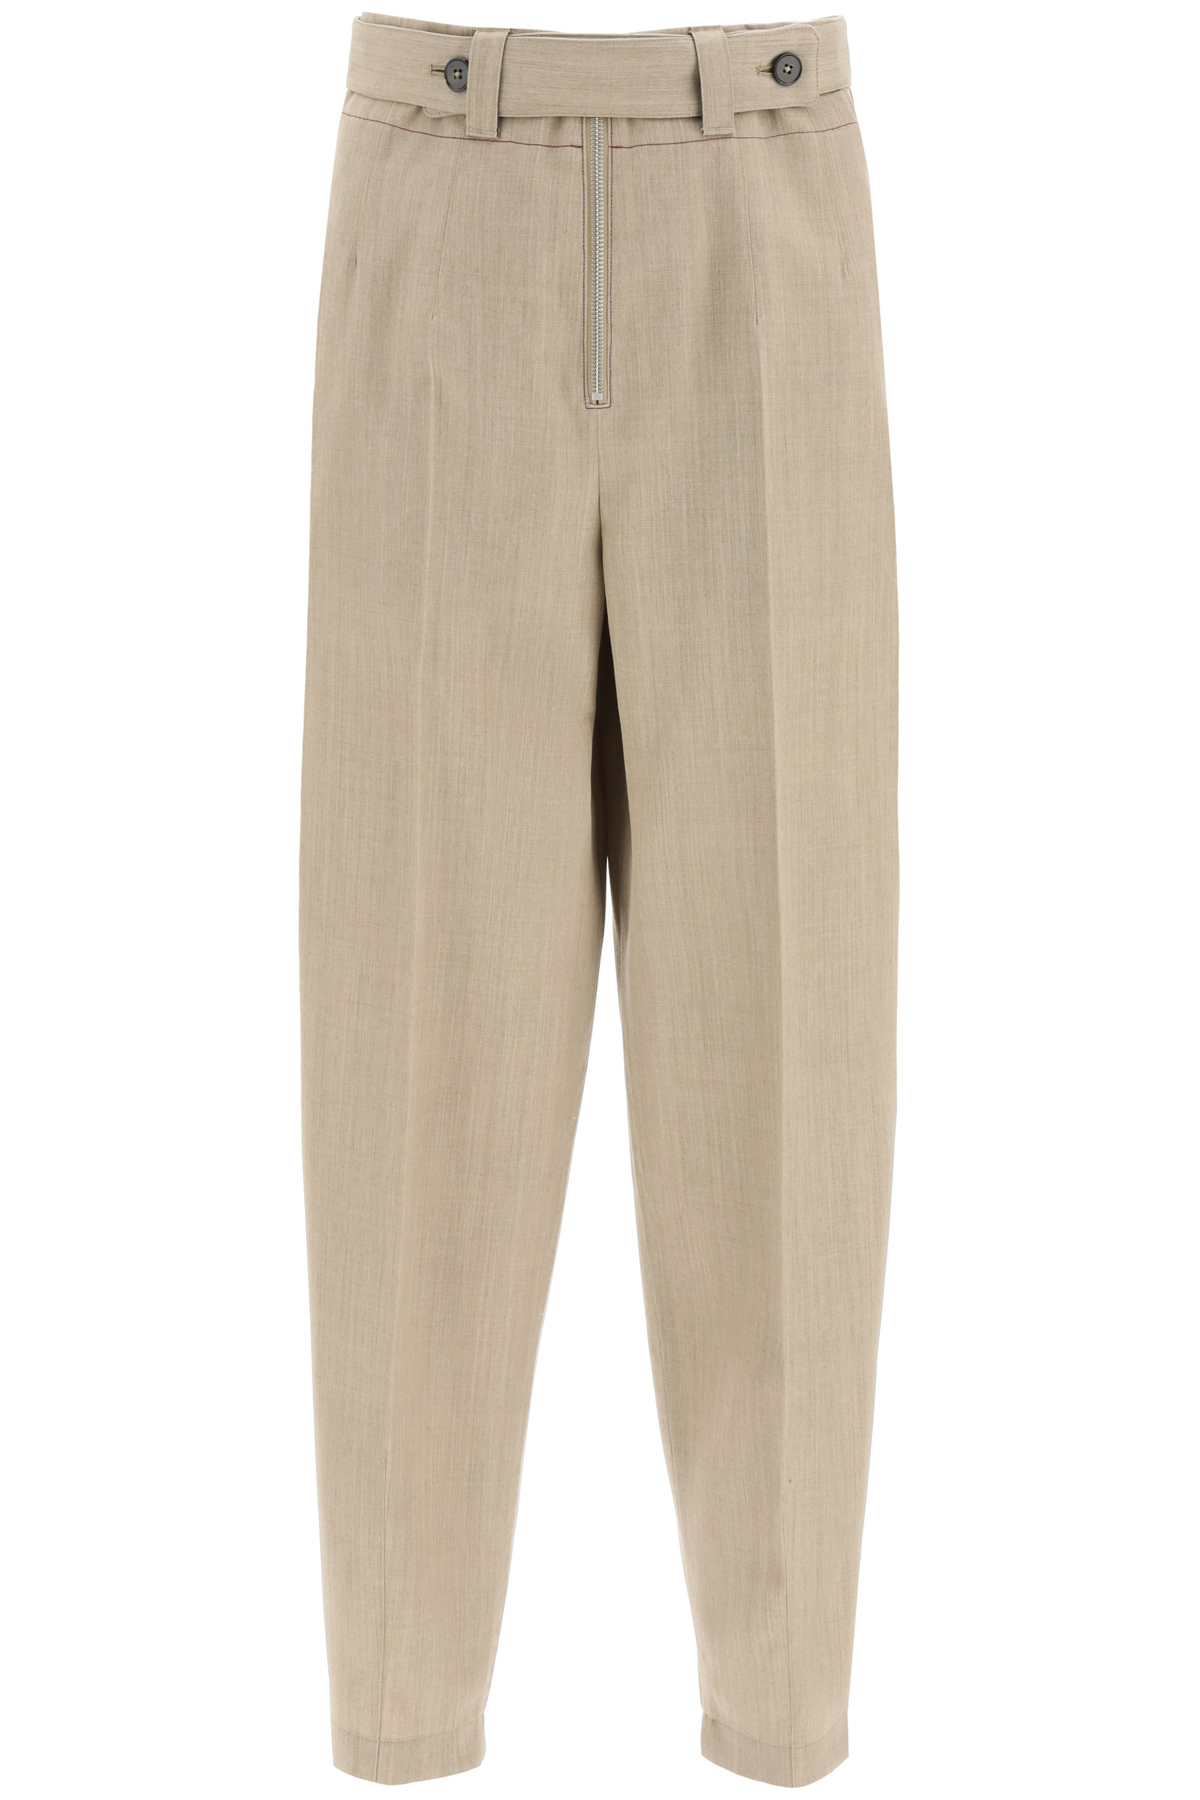 Jil Sander WOOL GRISAILLE TROUSERS